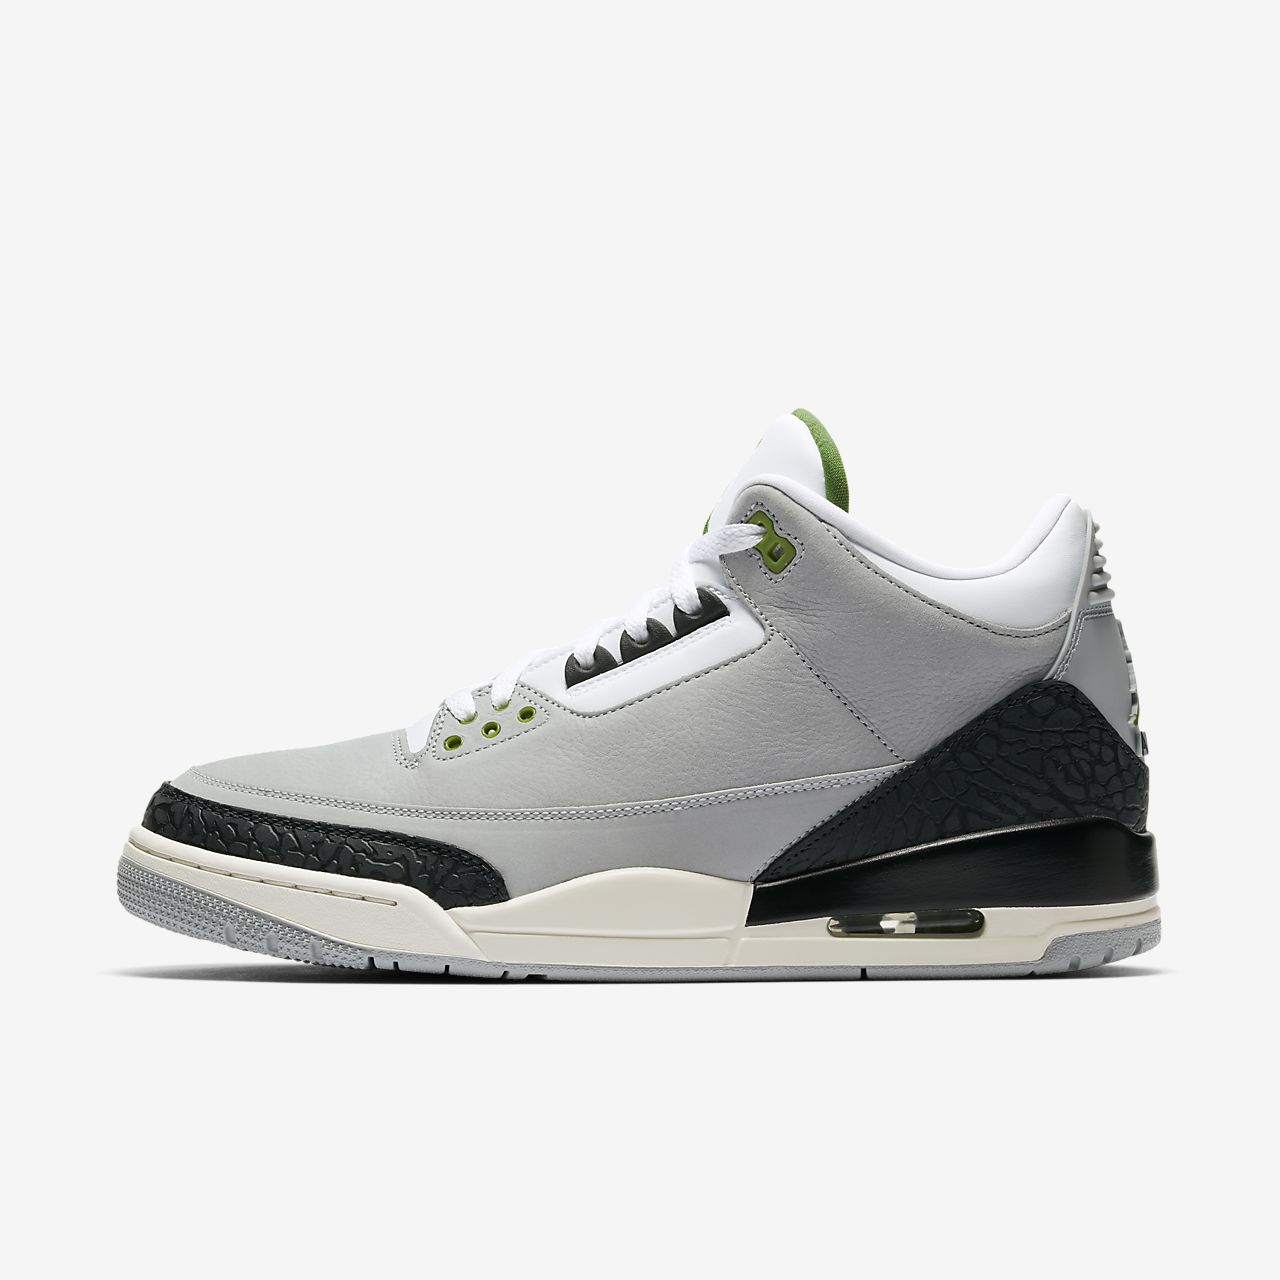 low priced 5a3fc 29fed Air Jordan 3 Retro Zapatillas - Hombre